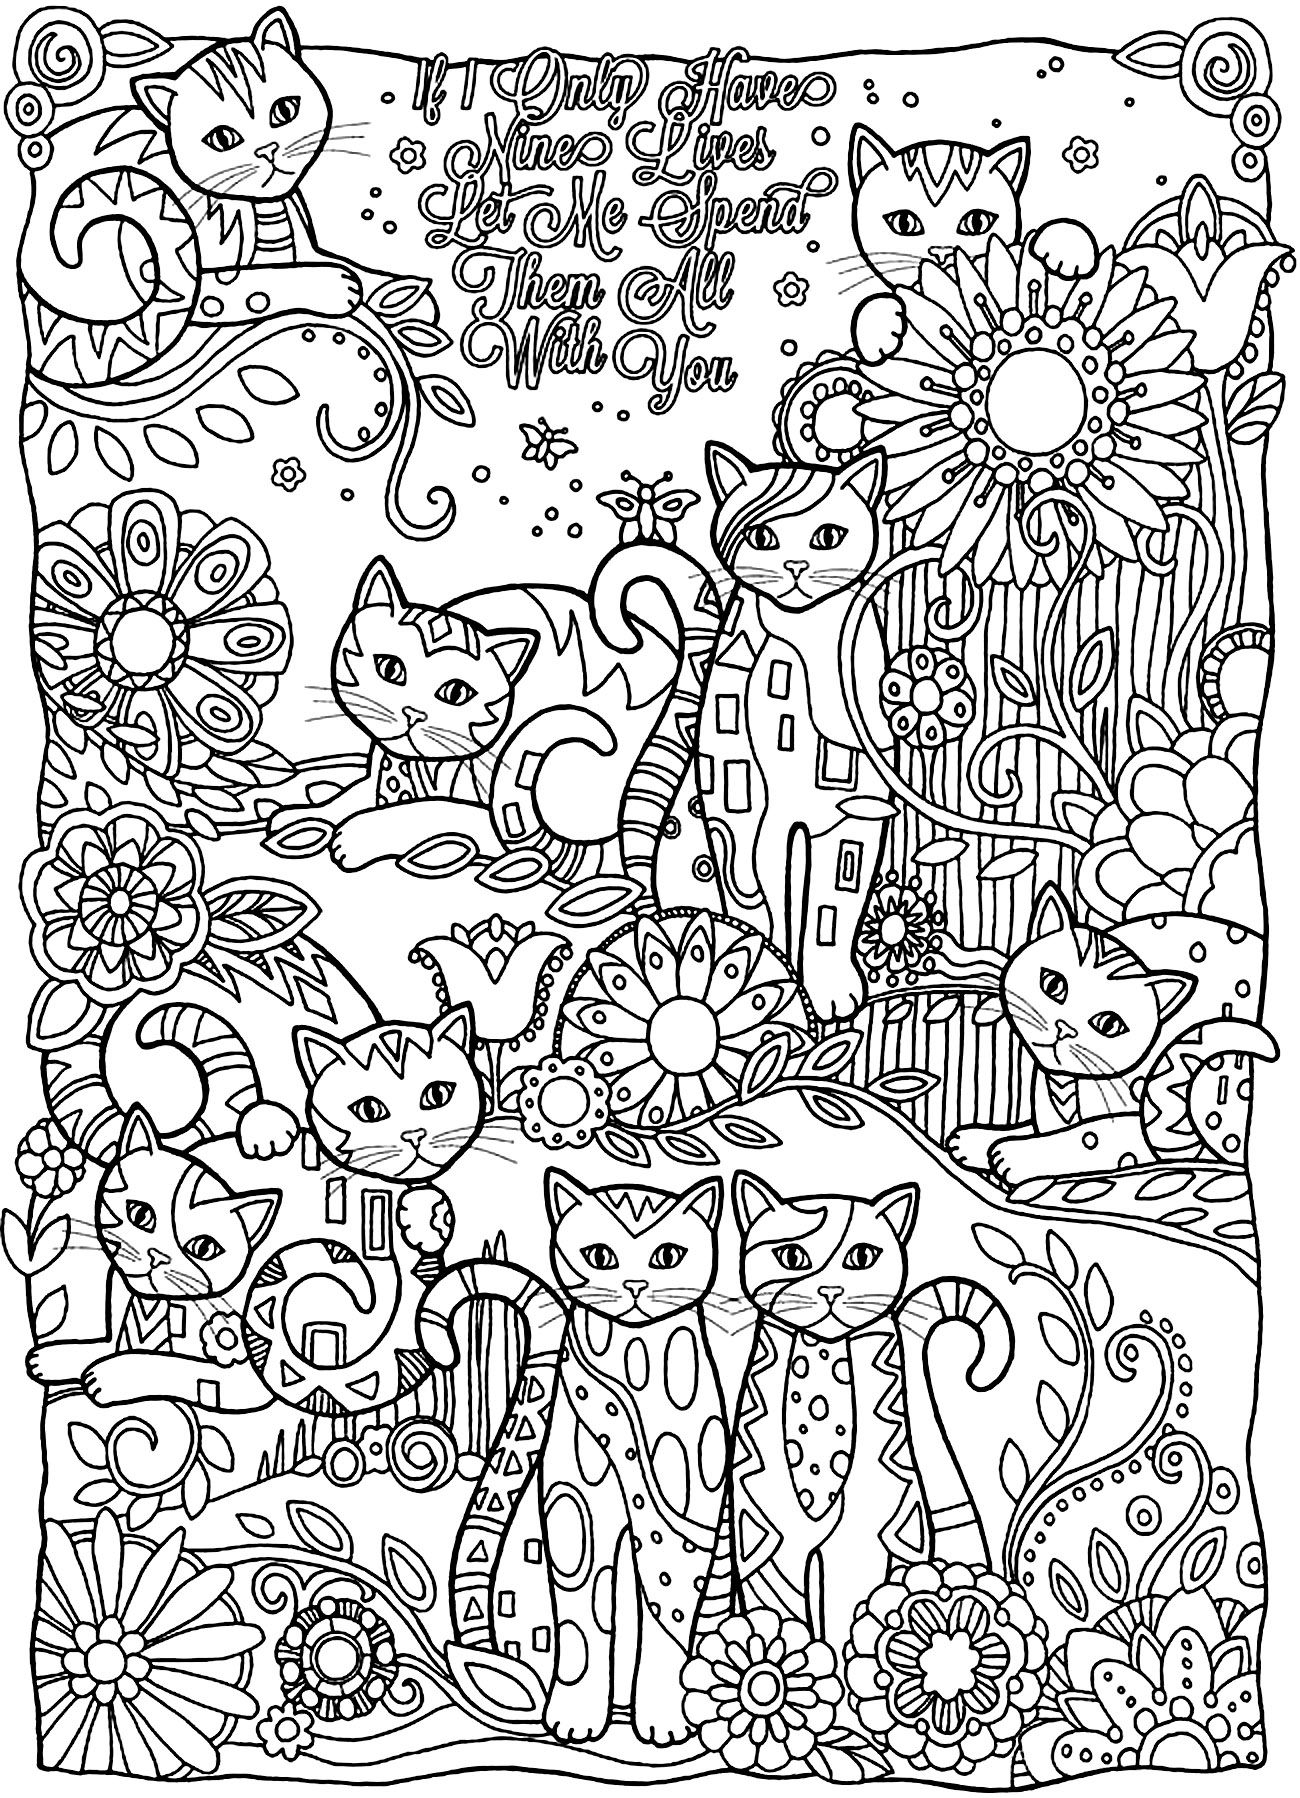 coloring pages printable for teenagers free printable abstract coloring pages for adults pages for teenagers coloring printable